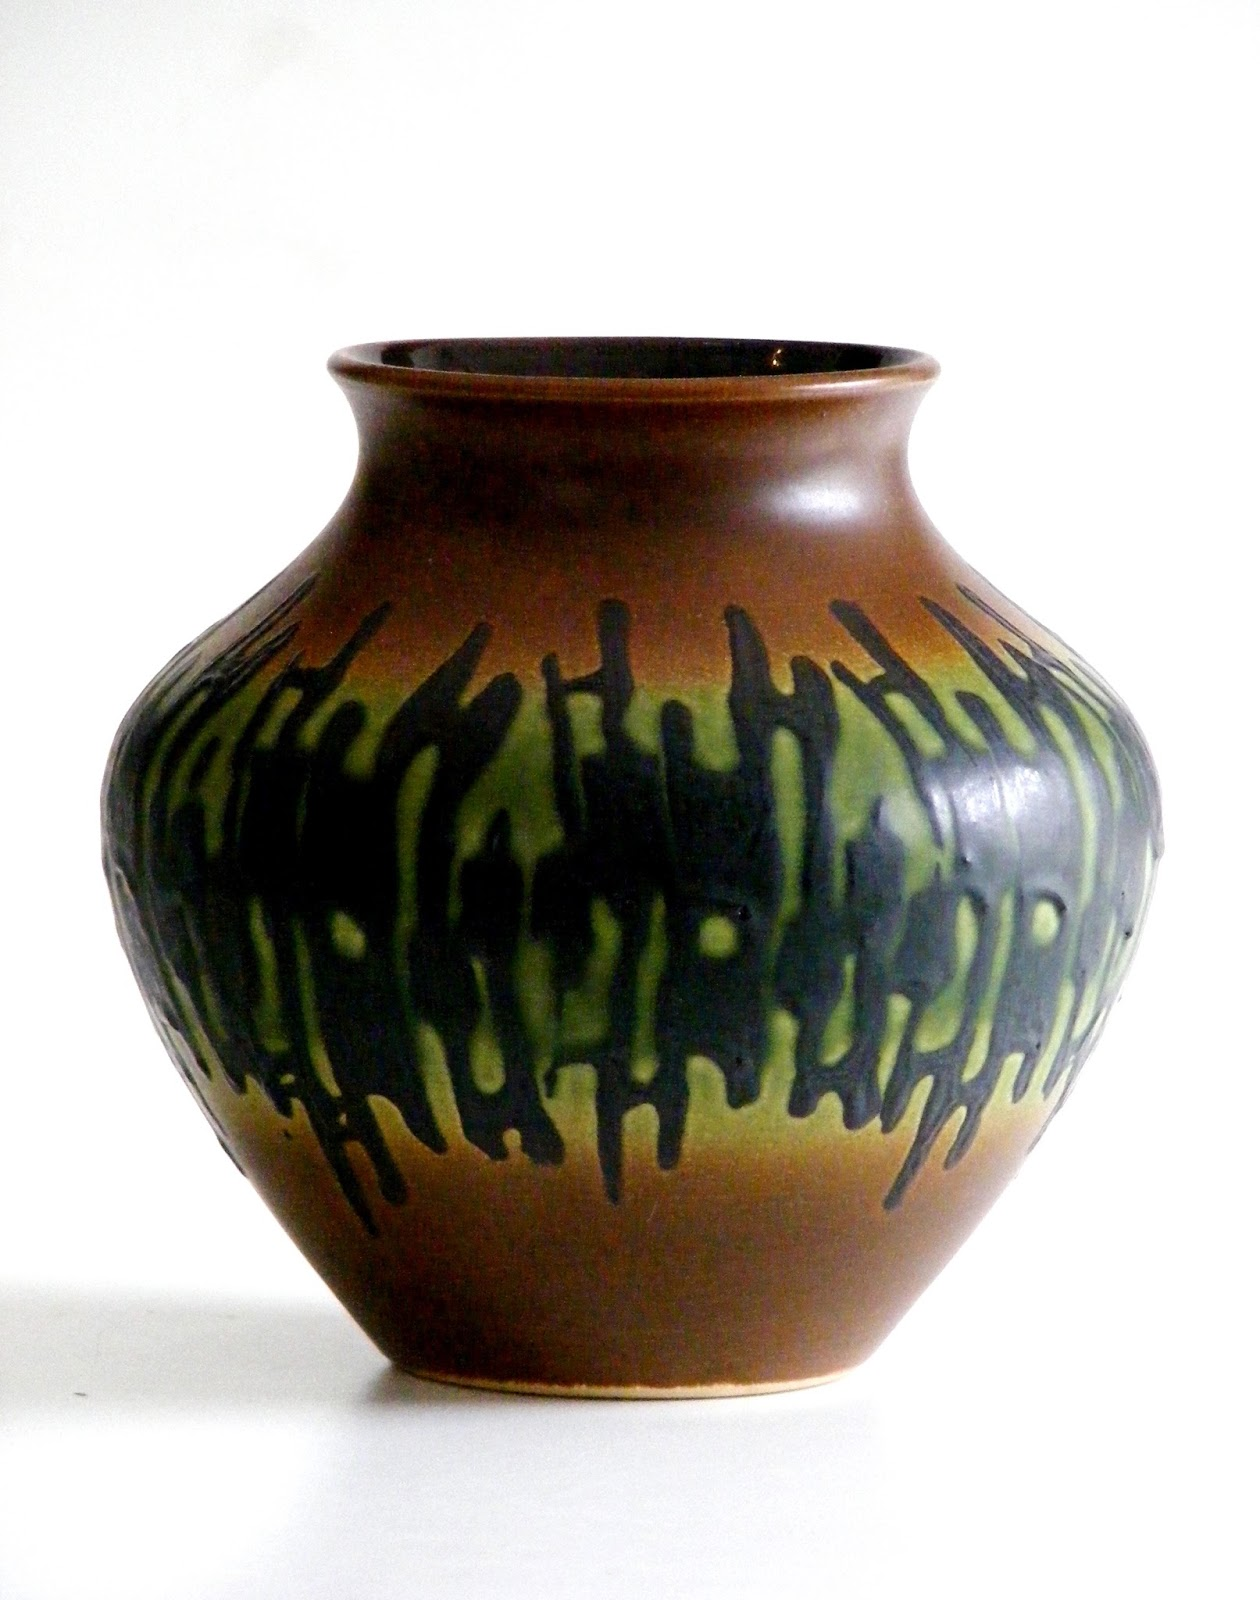 Vamp furniture west german vases at vamp04 november 2017 note the sizes as most are quite small please click on individual photos for details call us on 021 448 2755 or email us on infovampfurniture reviewsmspy